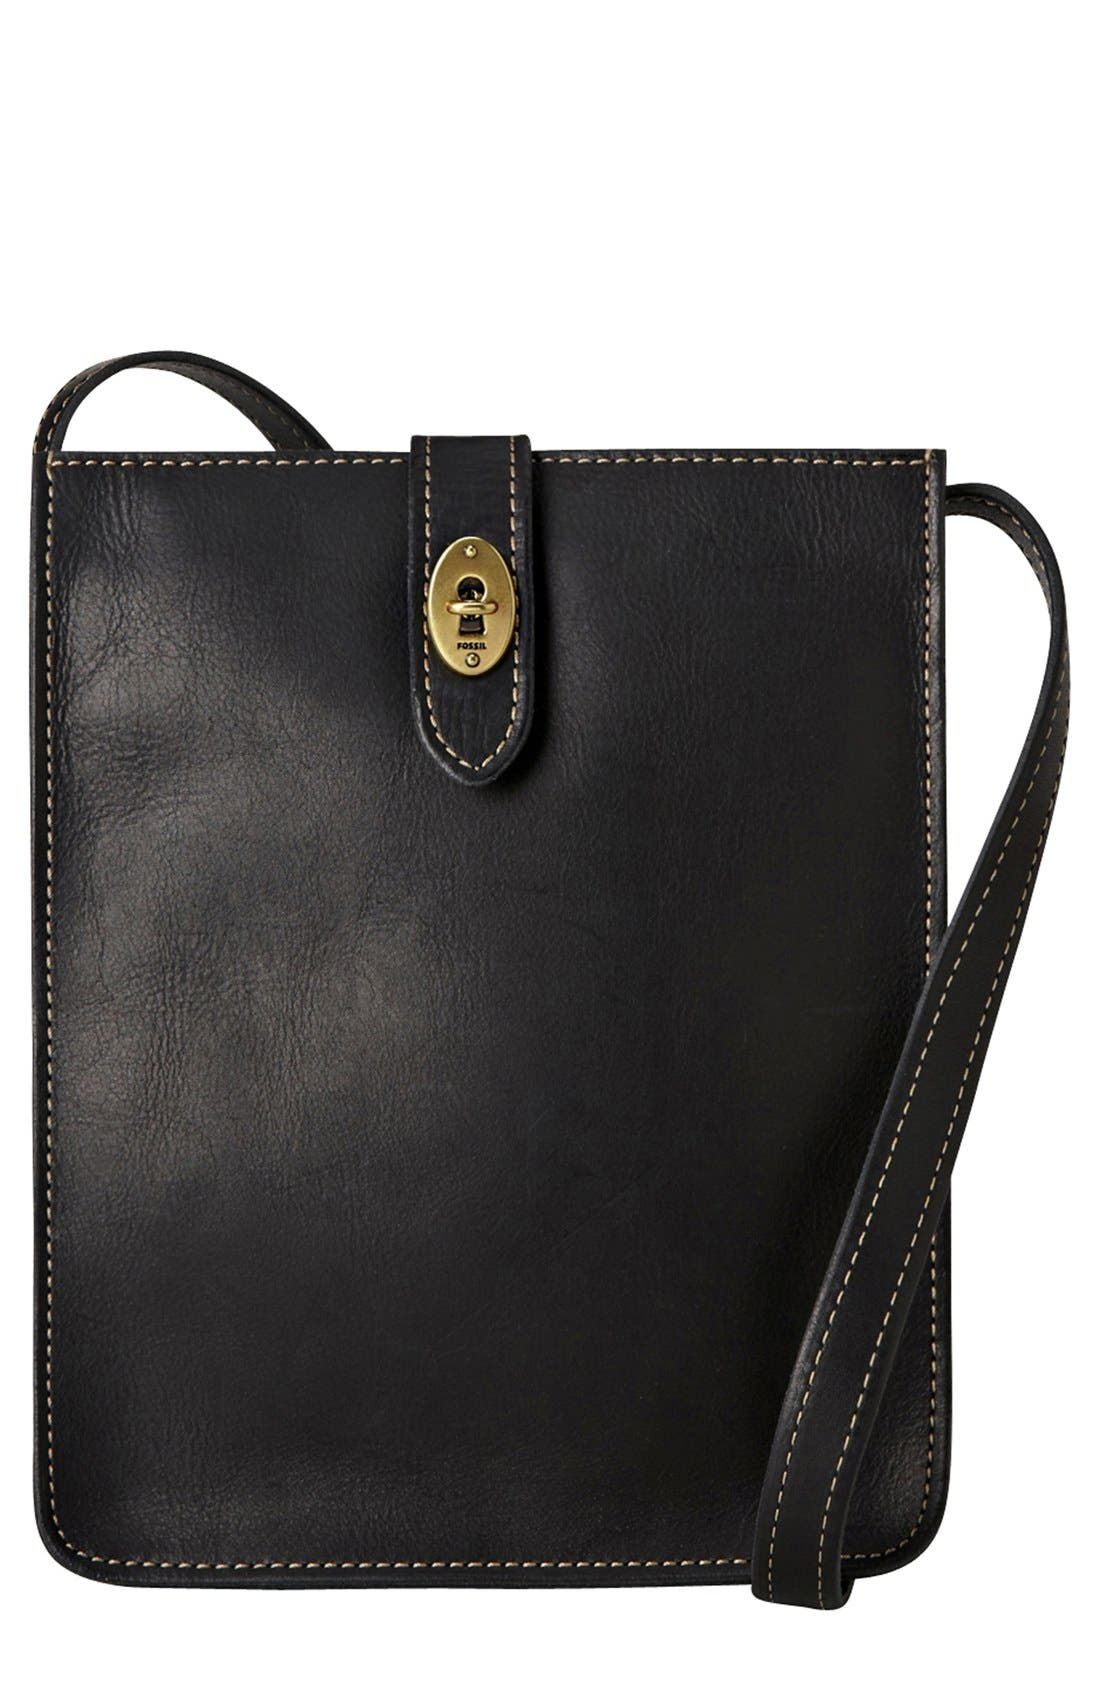 Main Image - Fossil 'Austin Slim' Crossbody Bag